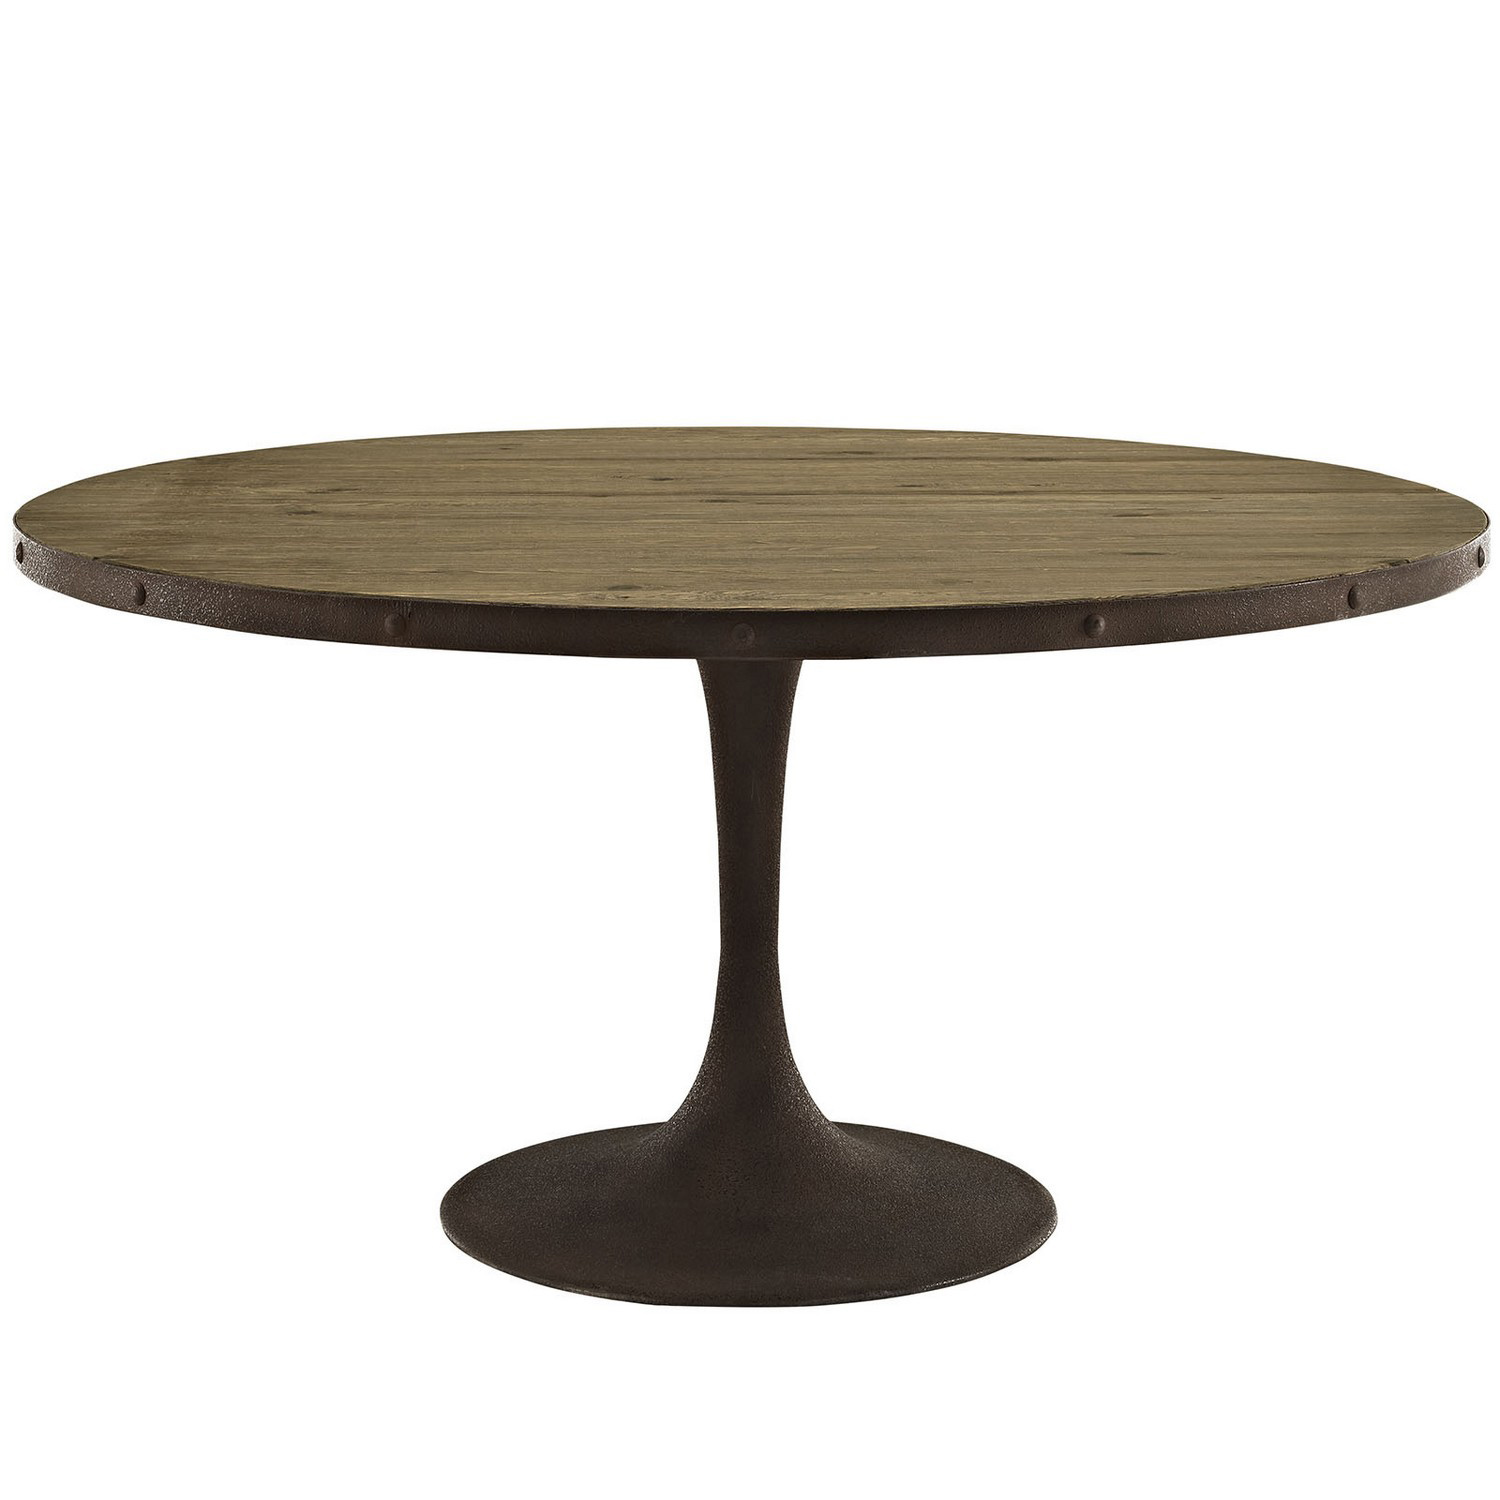 Modway Drive 60-inch Round Wood Top Dining Table - Brown